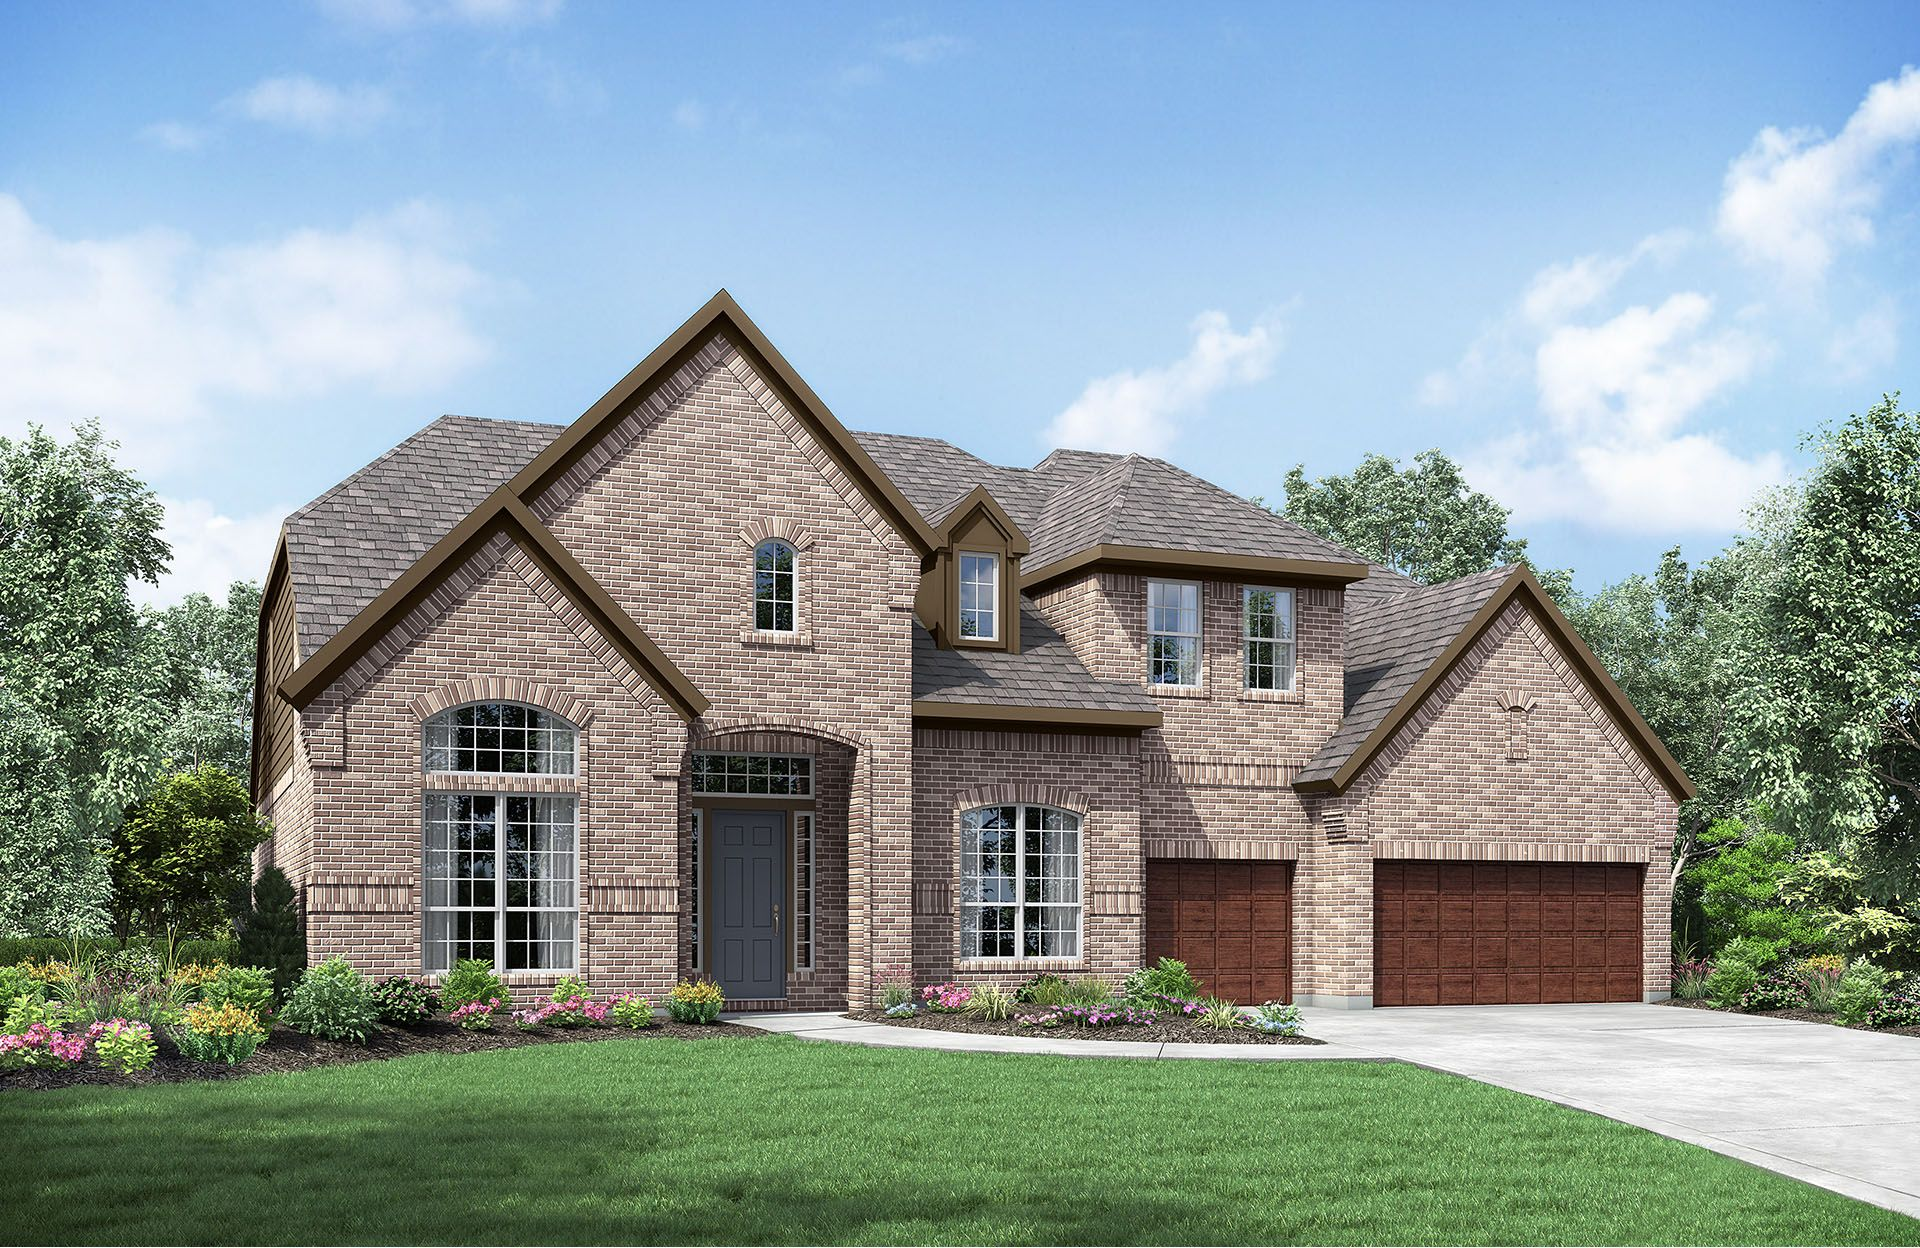 Single Family for Sale at Belterra - Driscoll 184 Hazy Hills Loop Dripping Springs, Texas 78620 United States